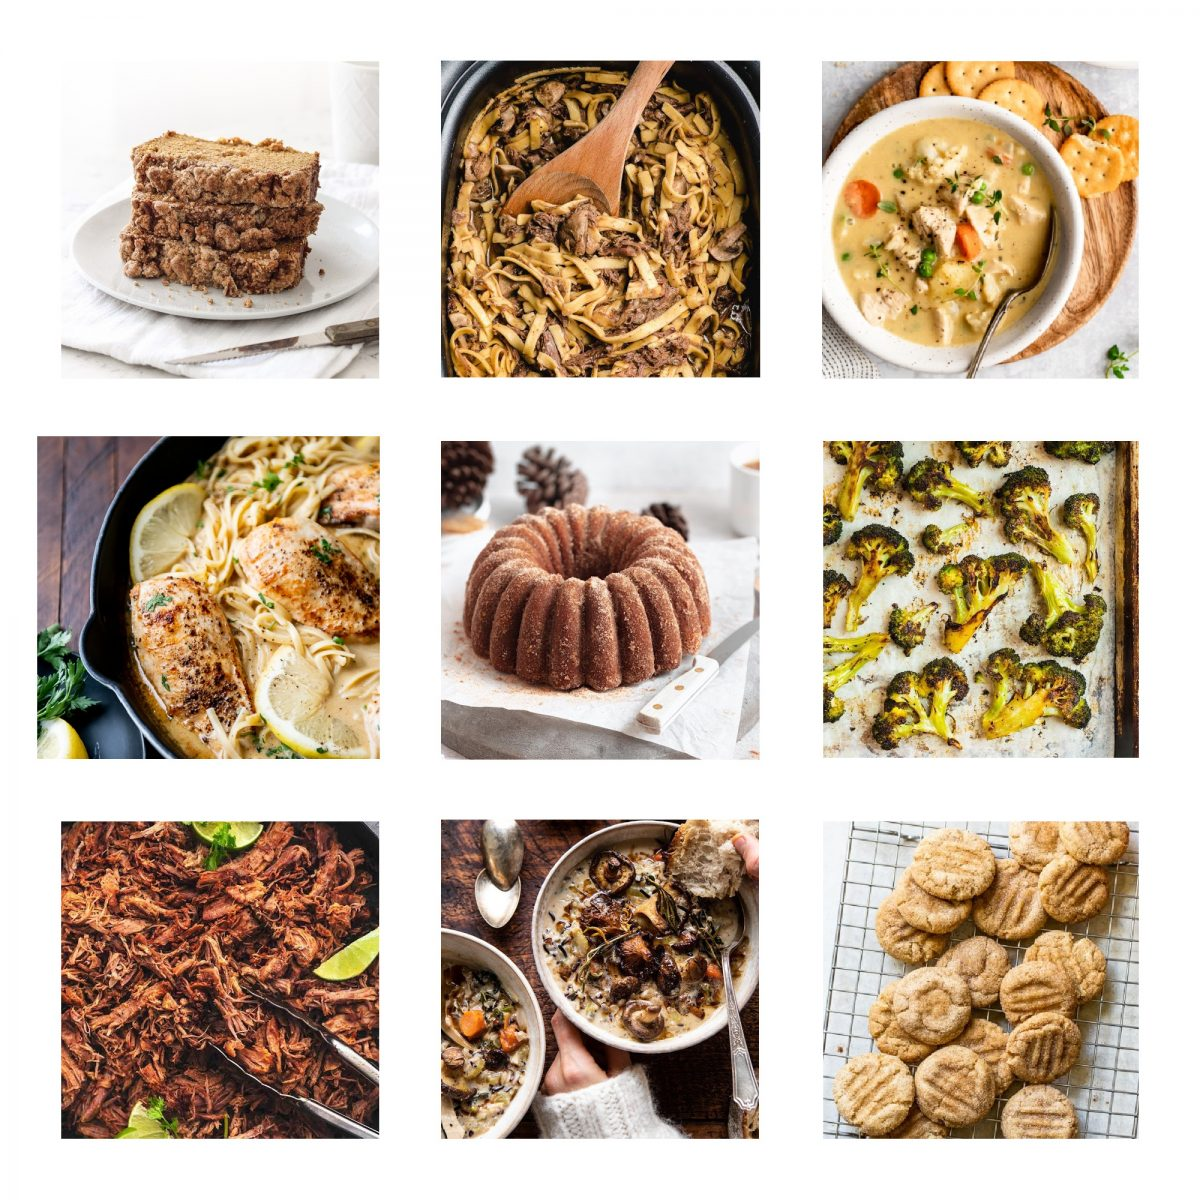 Get inspired in the kitchen with this menu of recipes featuring fall flavors and comfort food!